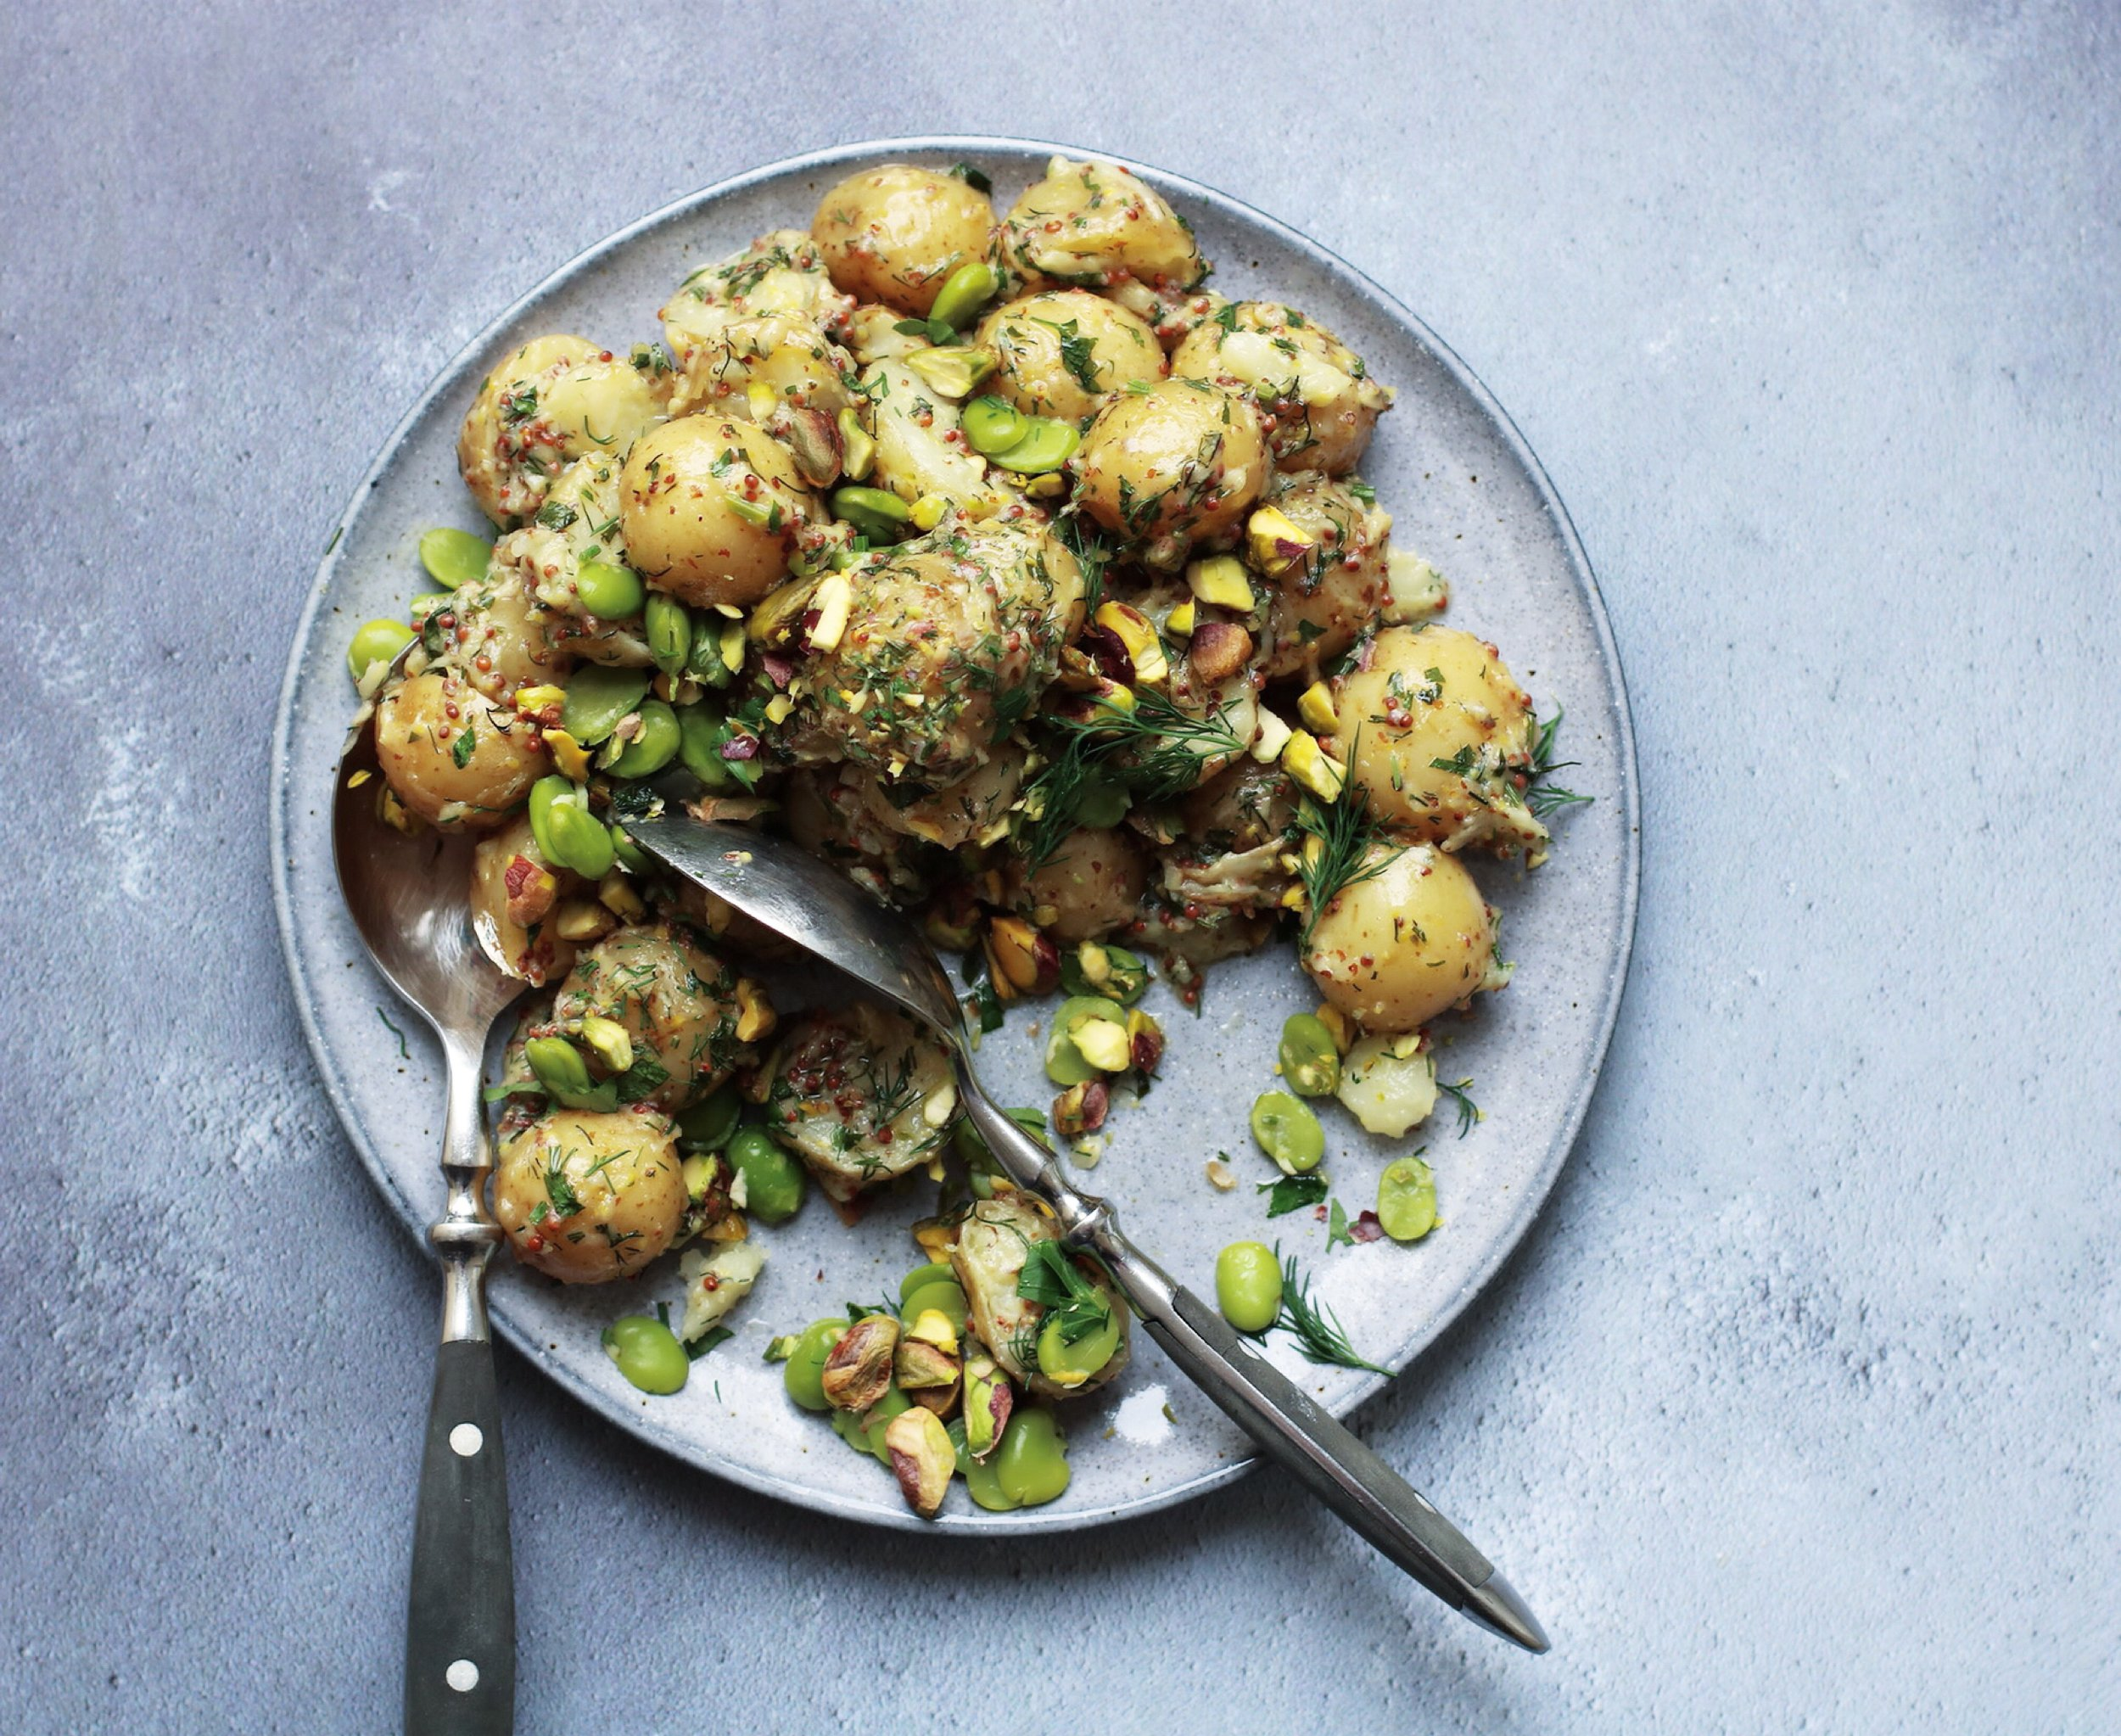 POTATO SALAD WITH BROAD BEANS AND PISTACHIOS   March-June.  A potato salad fit for spring when the Jersey Royals are in season. Topped with grainy mustard, crunchy pistachios and herby broad beans.